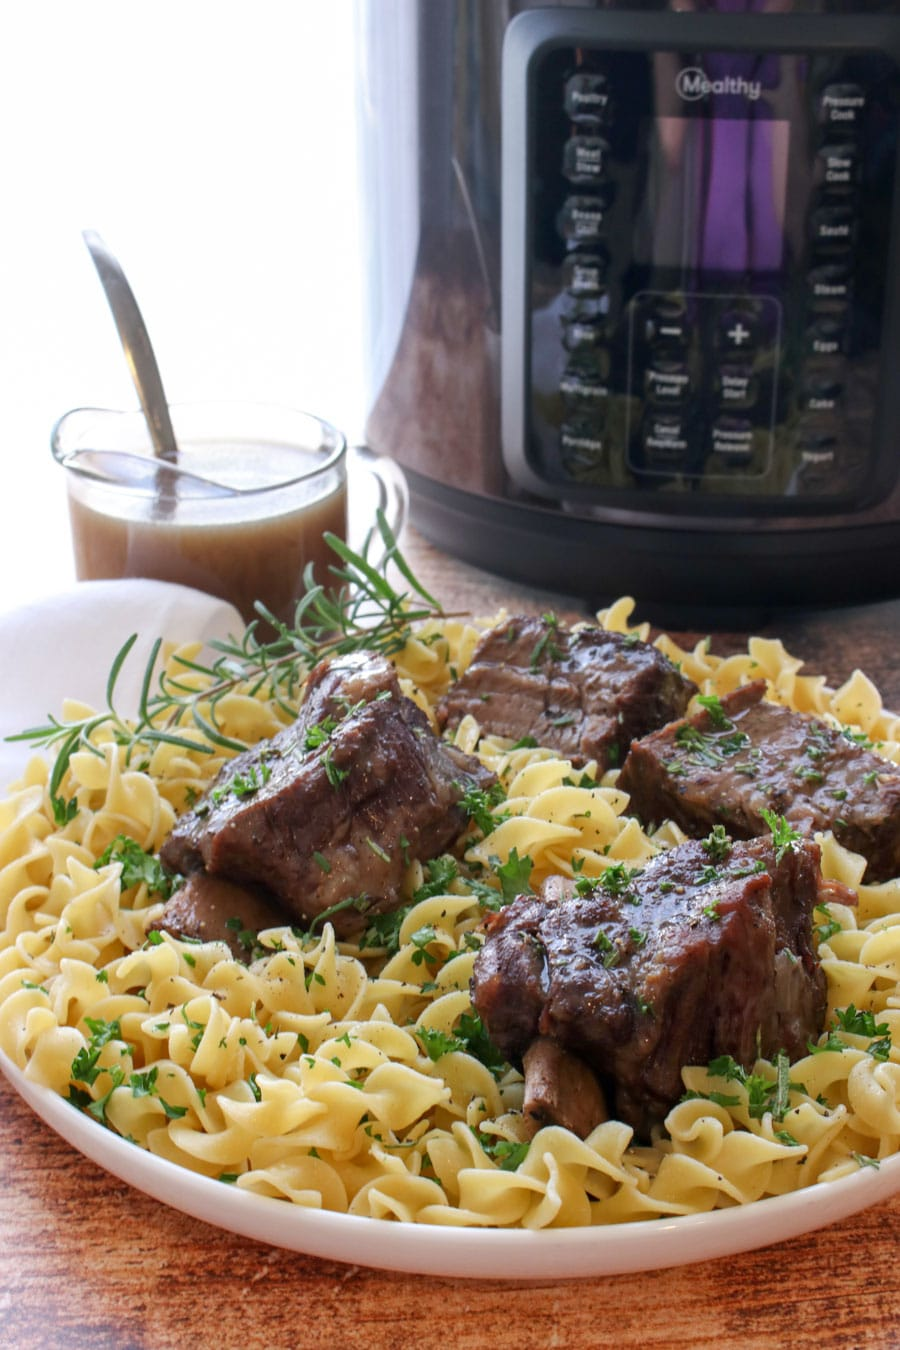 plate of ribs and noodles with pressure cooker in the background